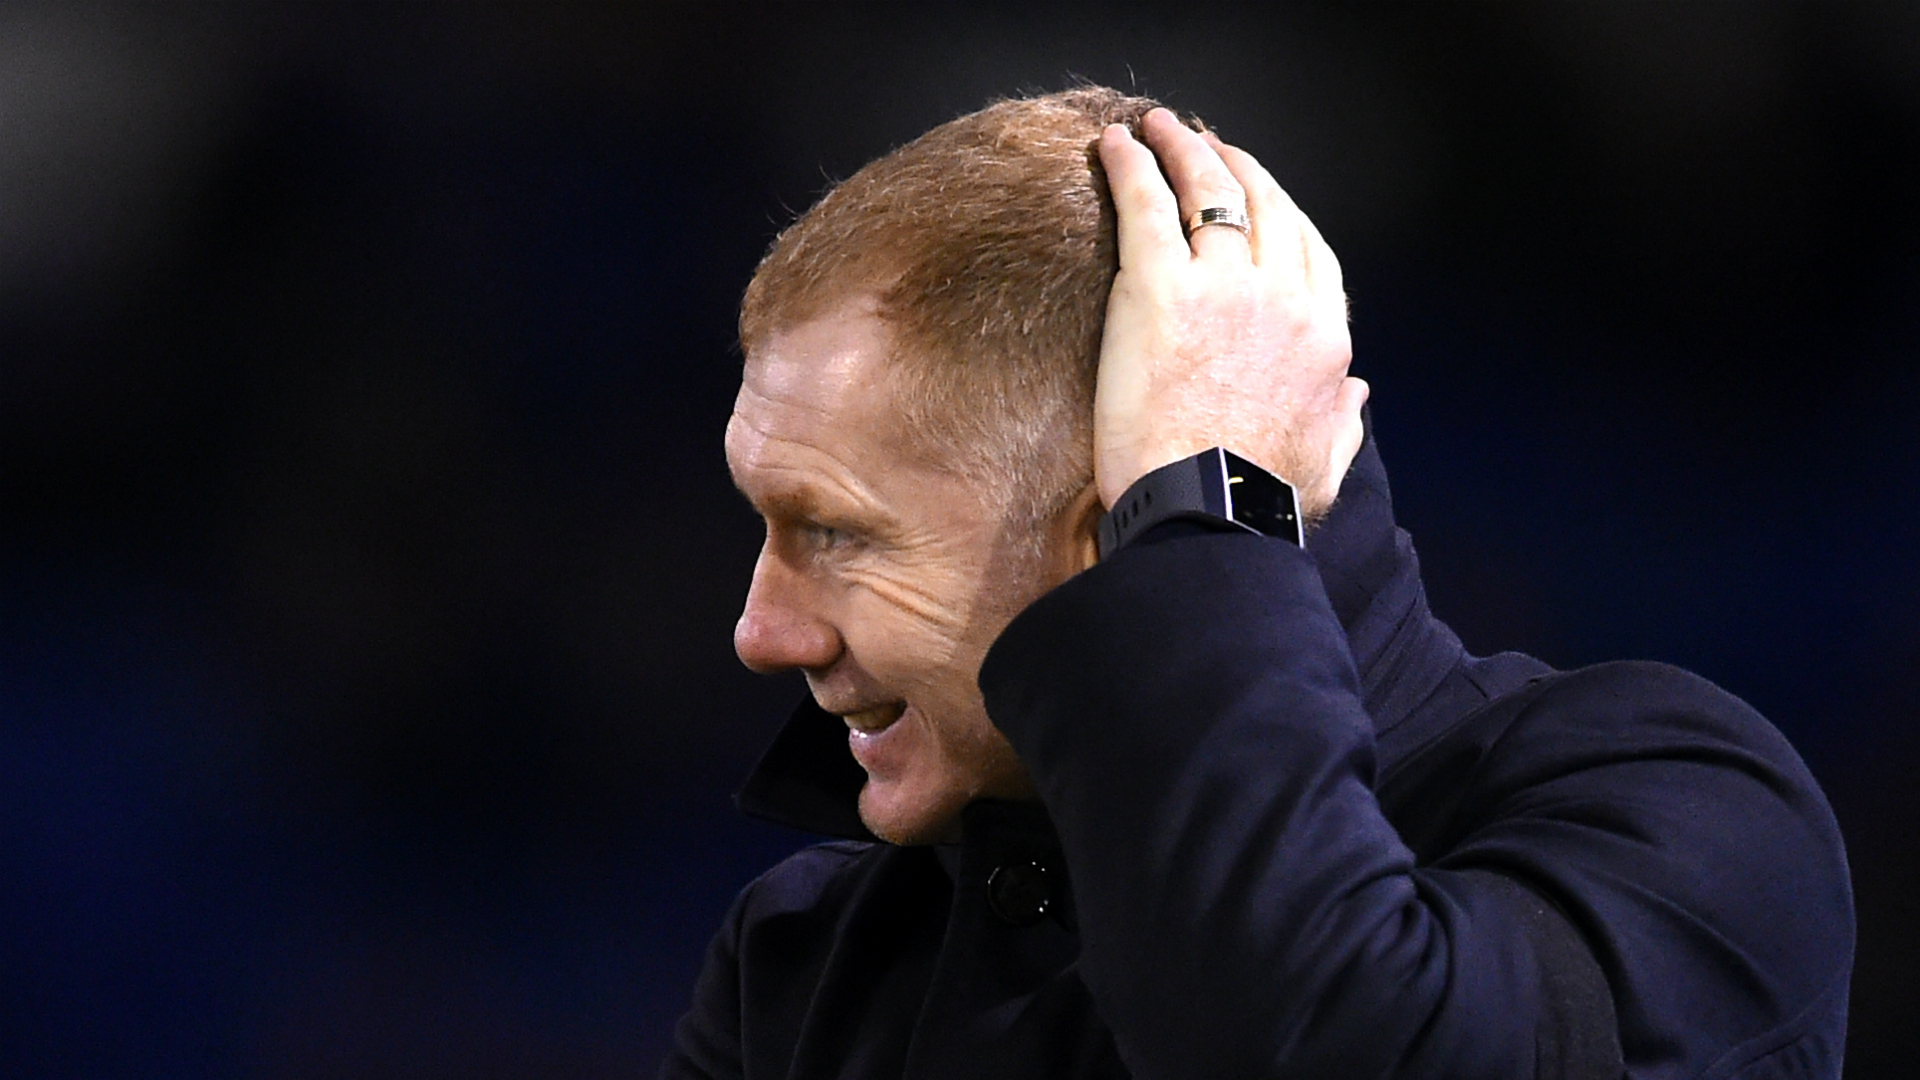 Scholes charged over alleged betting breaches